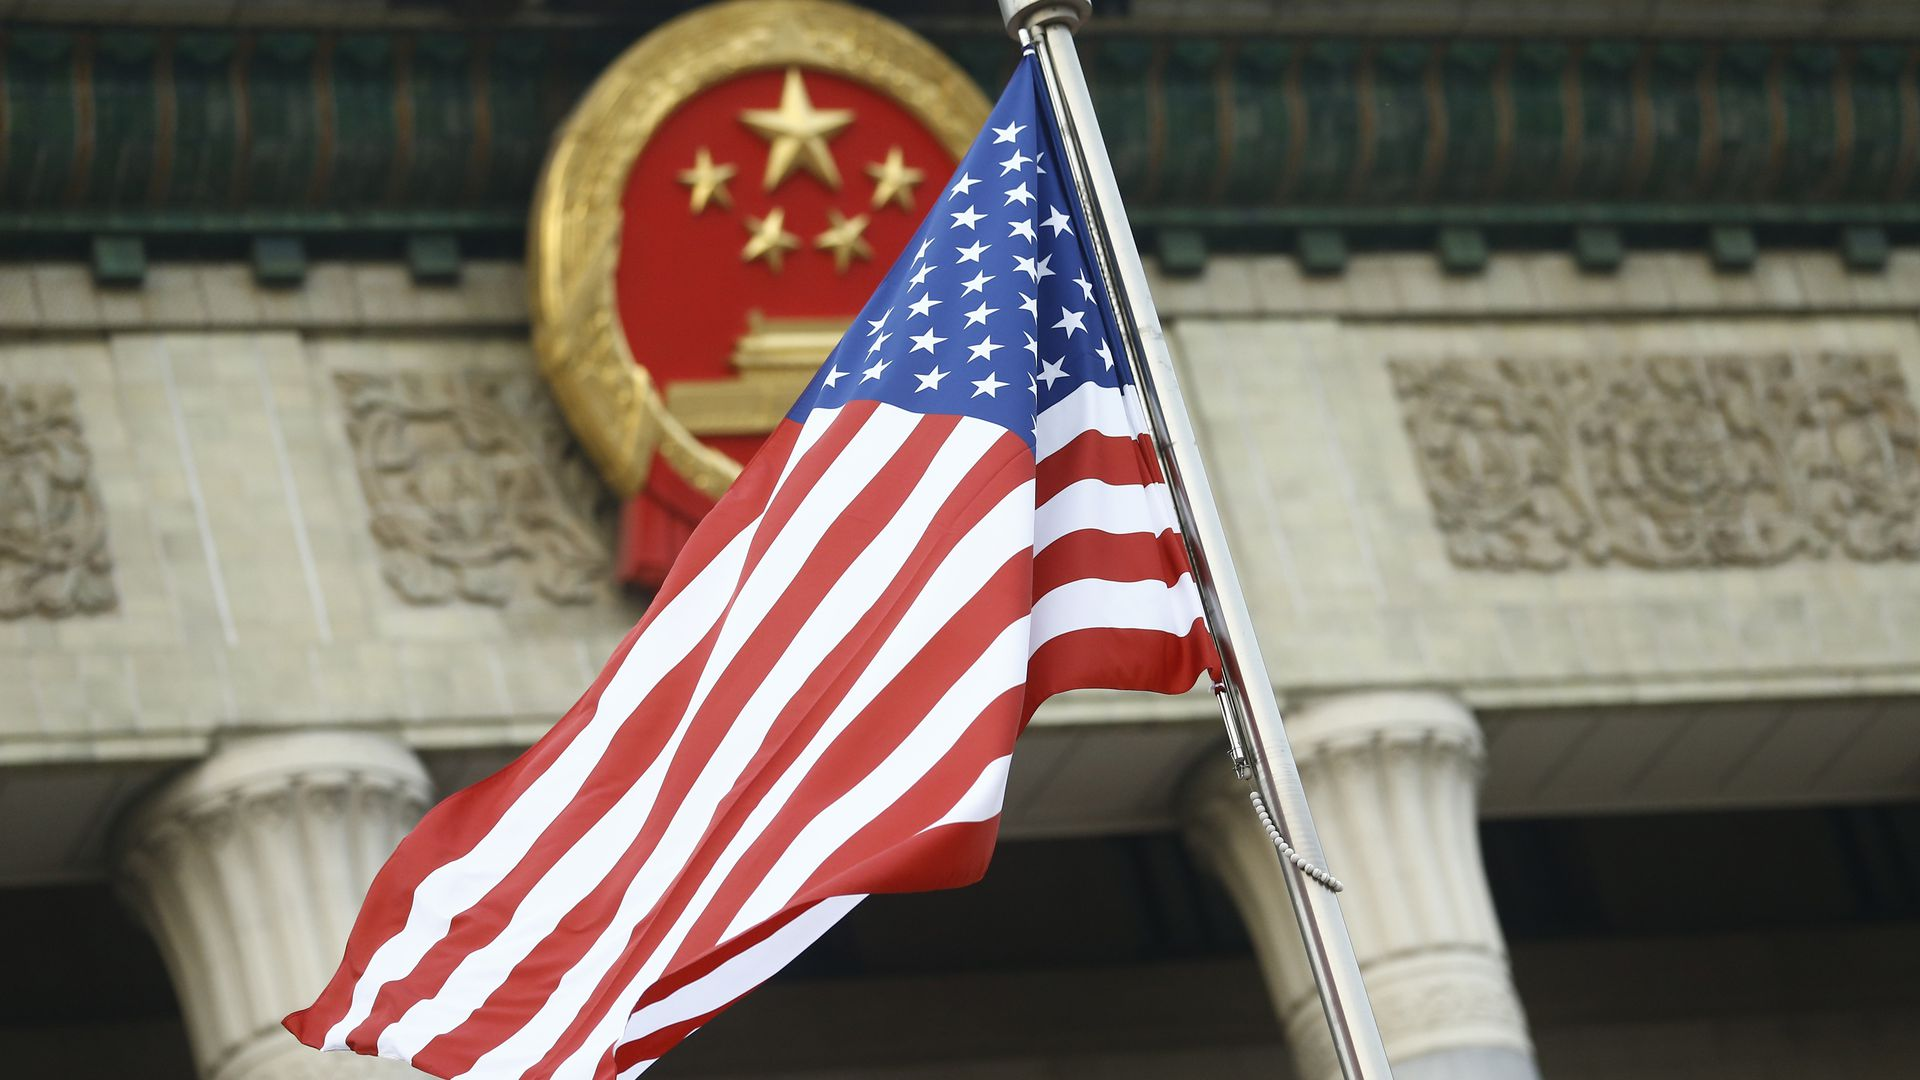 A US flag in front of a Chinese building